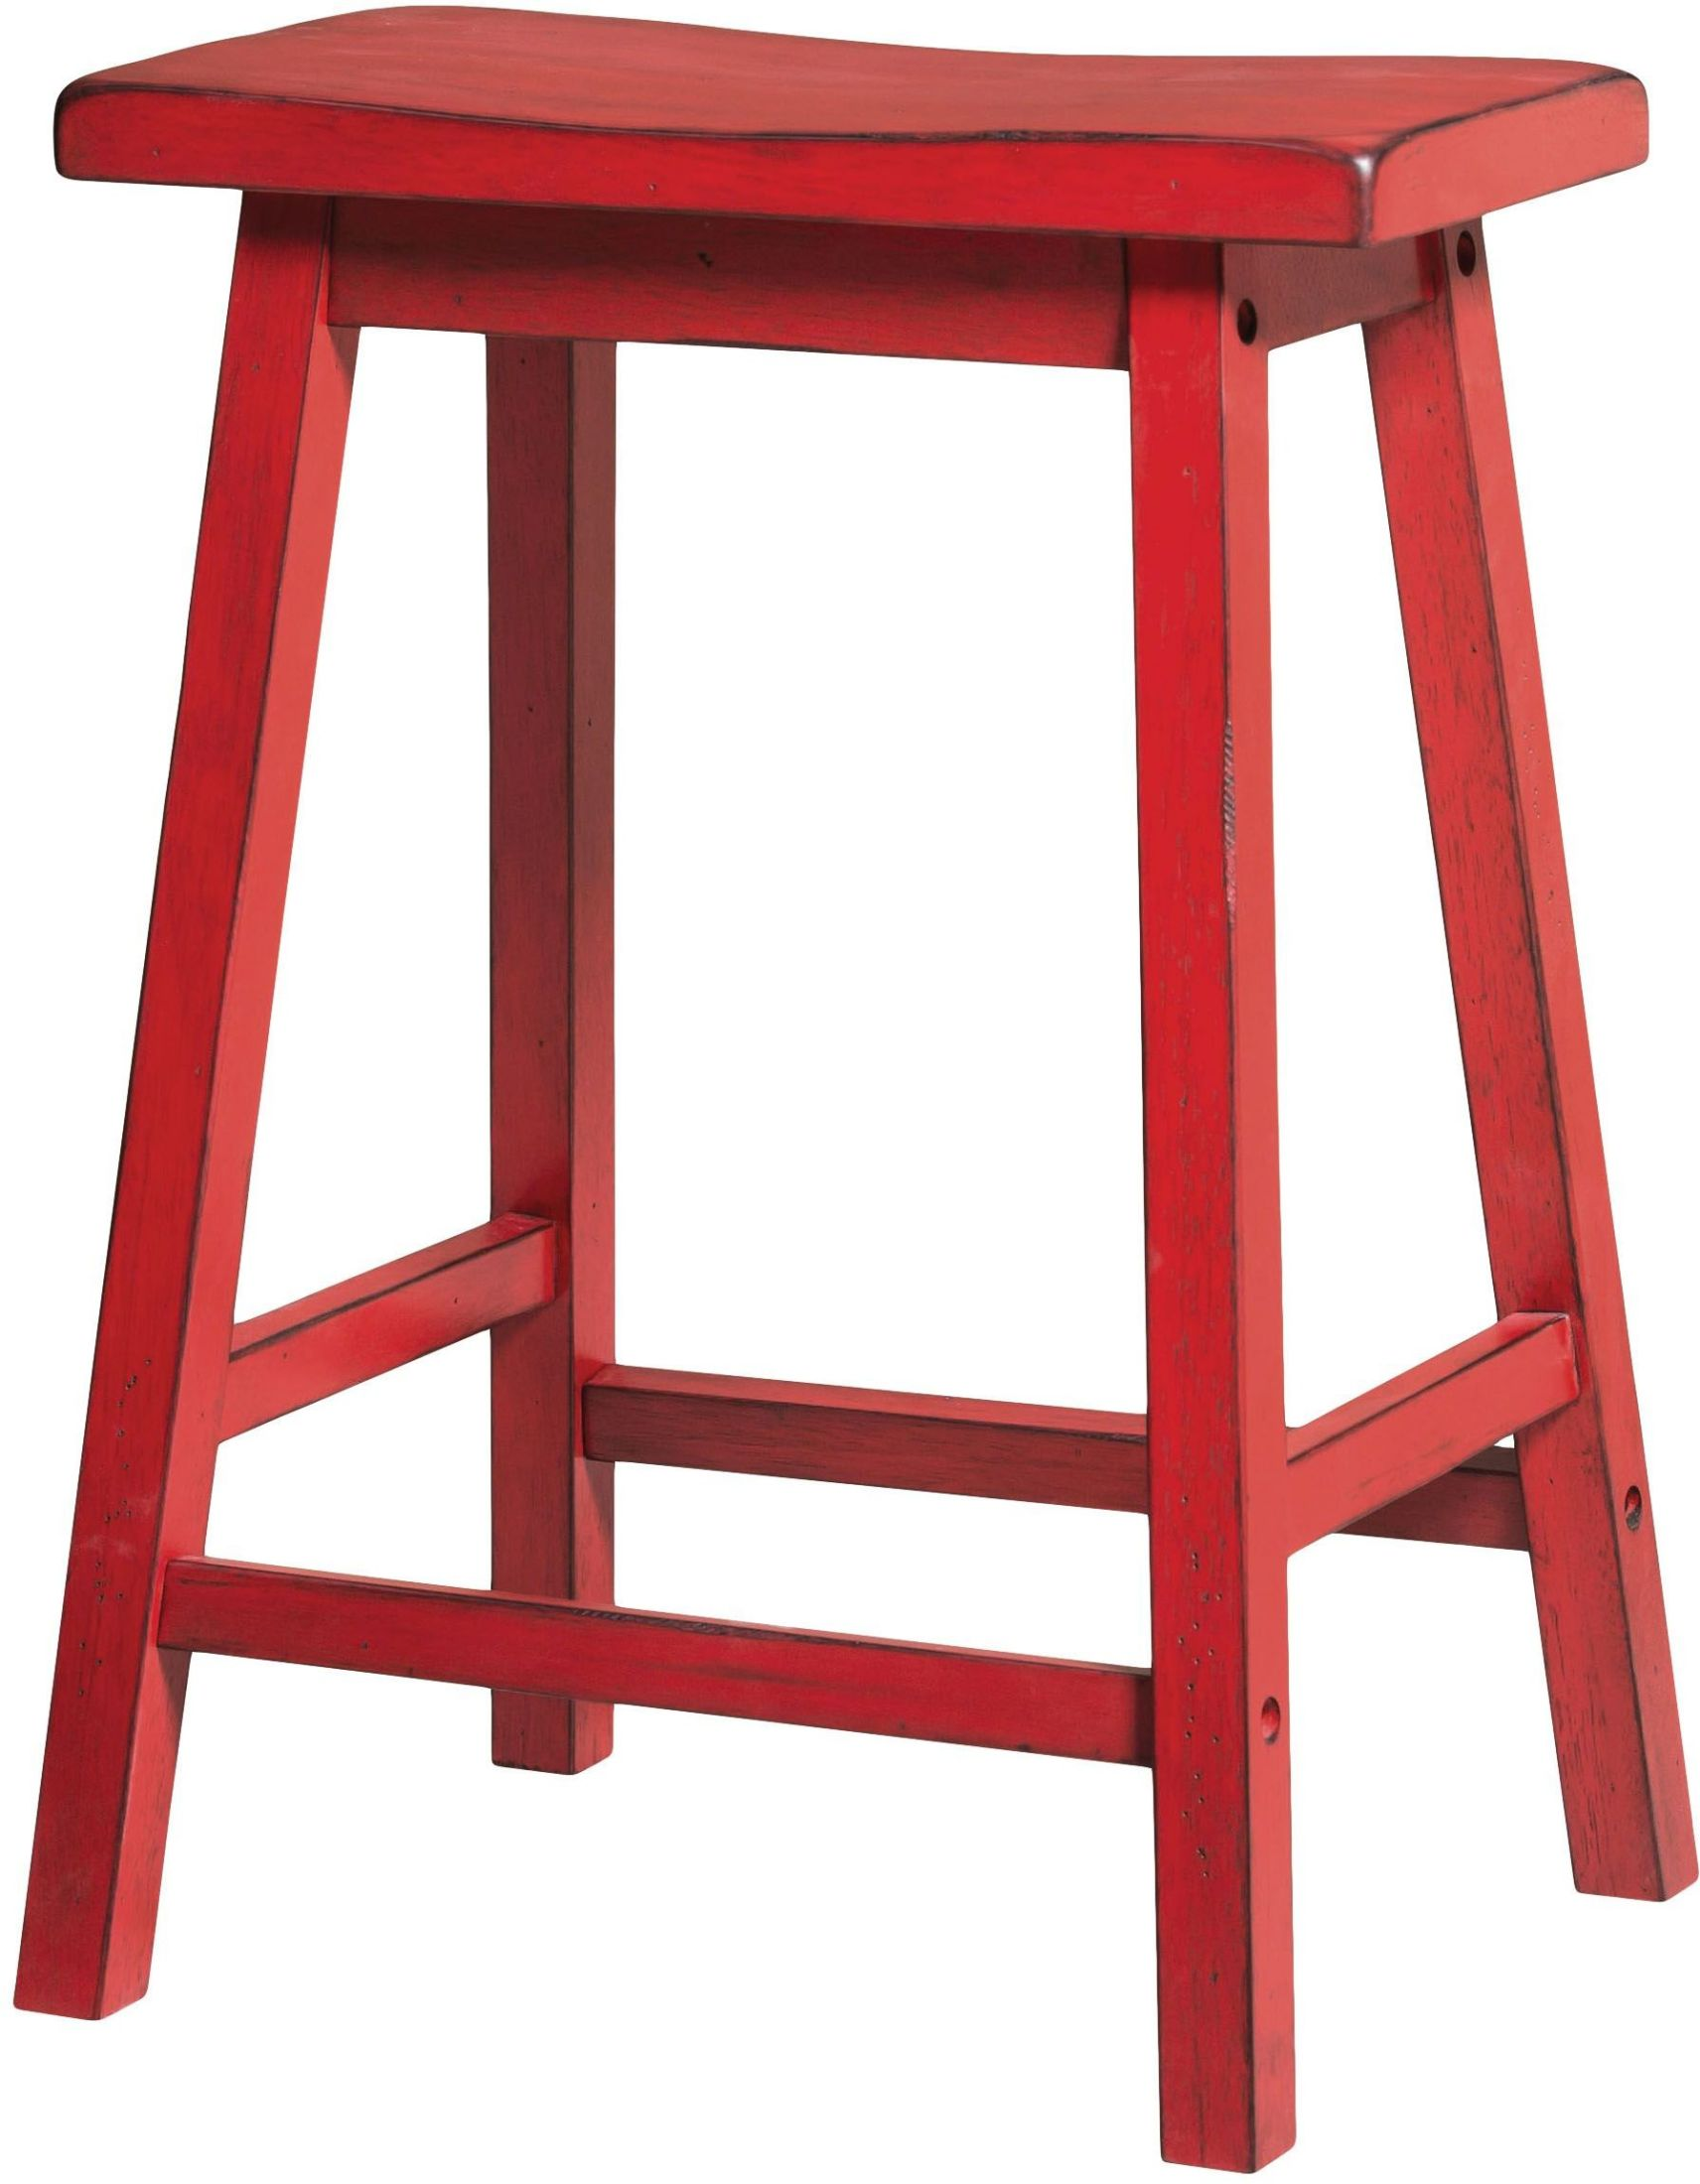 Red Counter Height Chairs Acme Gaucho Antique Red Counter Height Stool Set Of 2